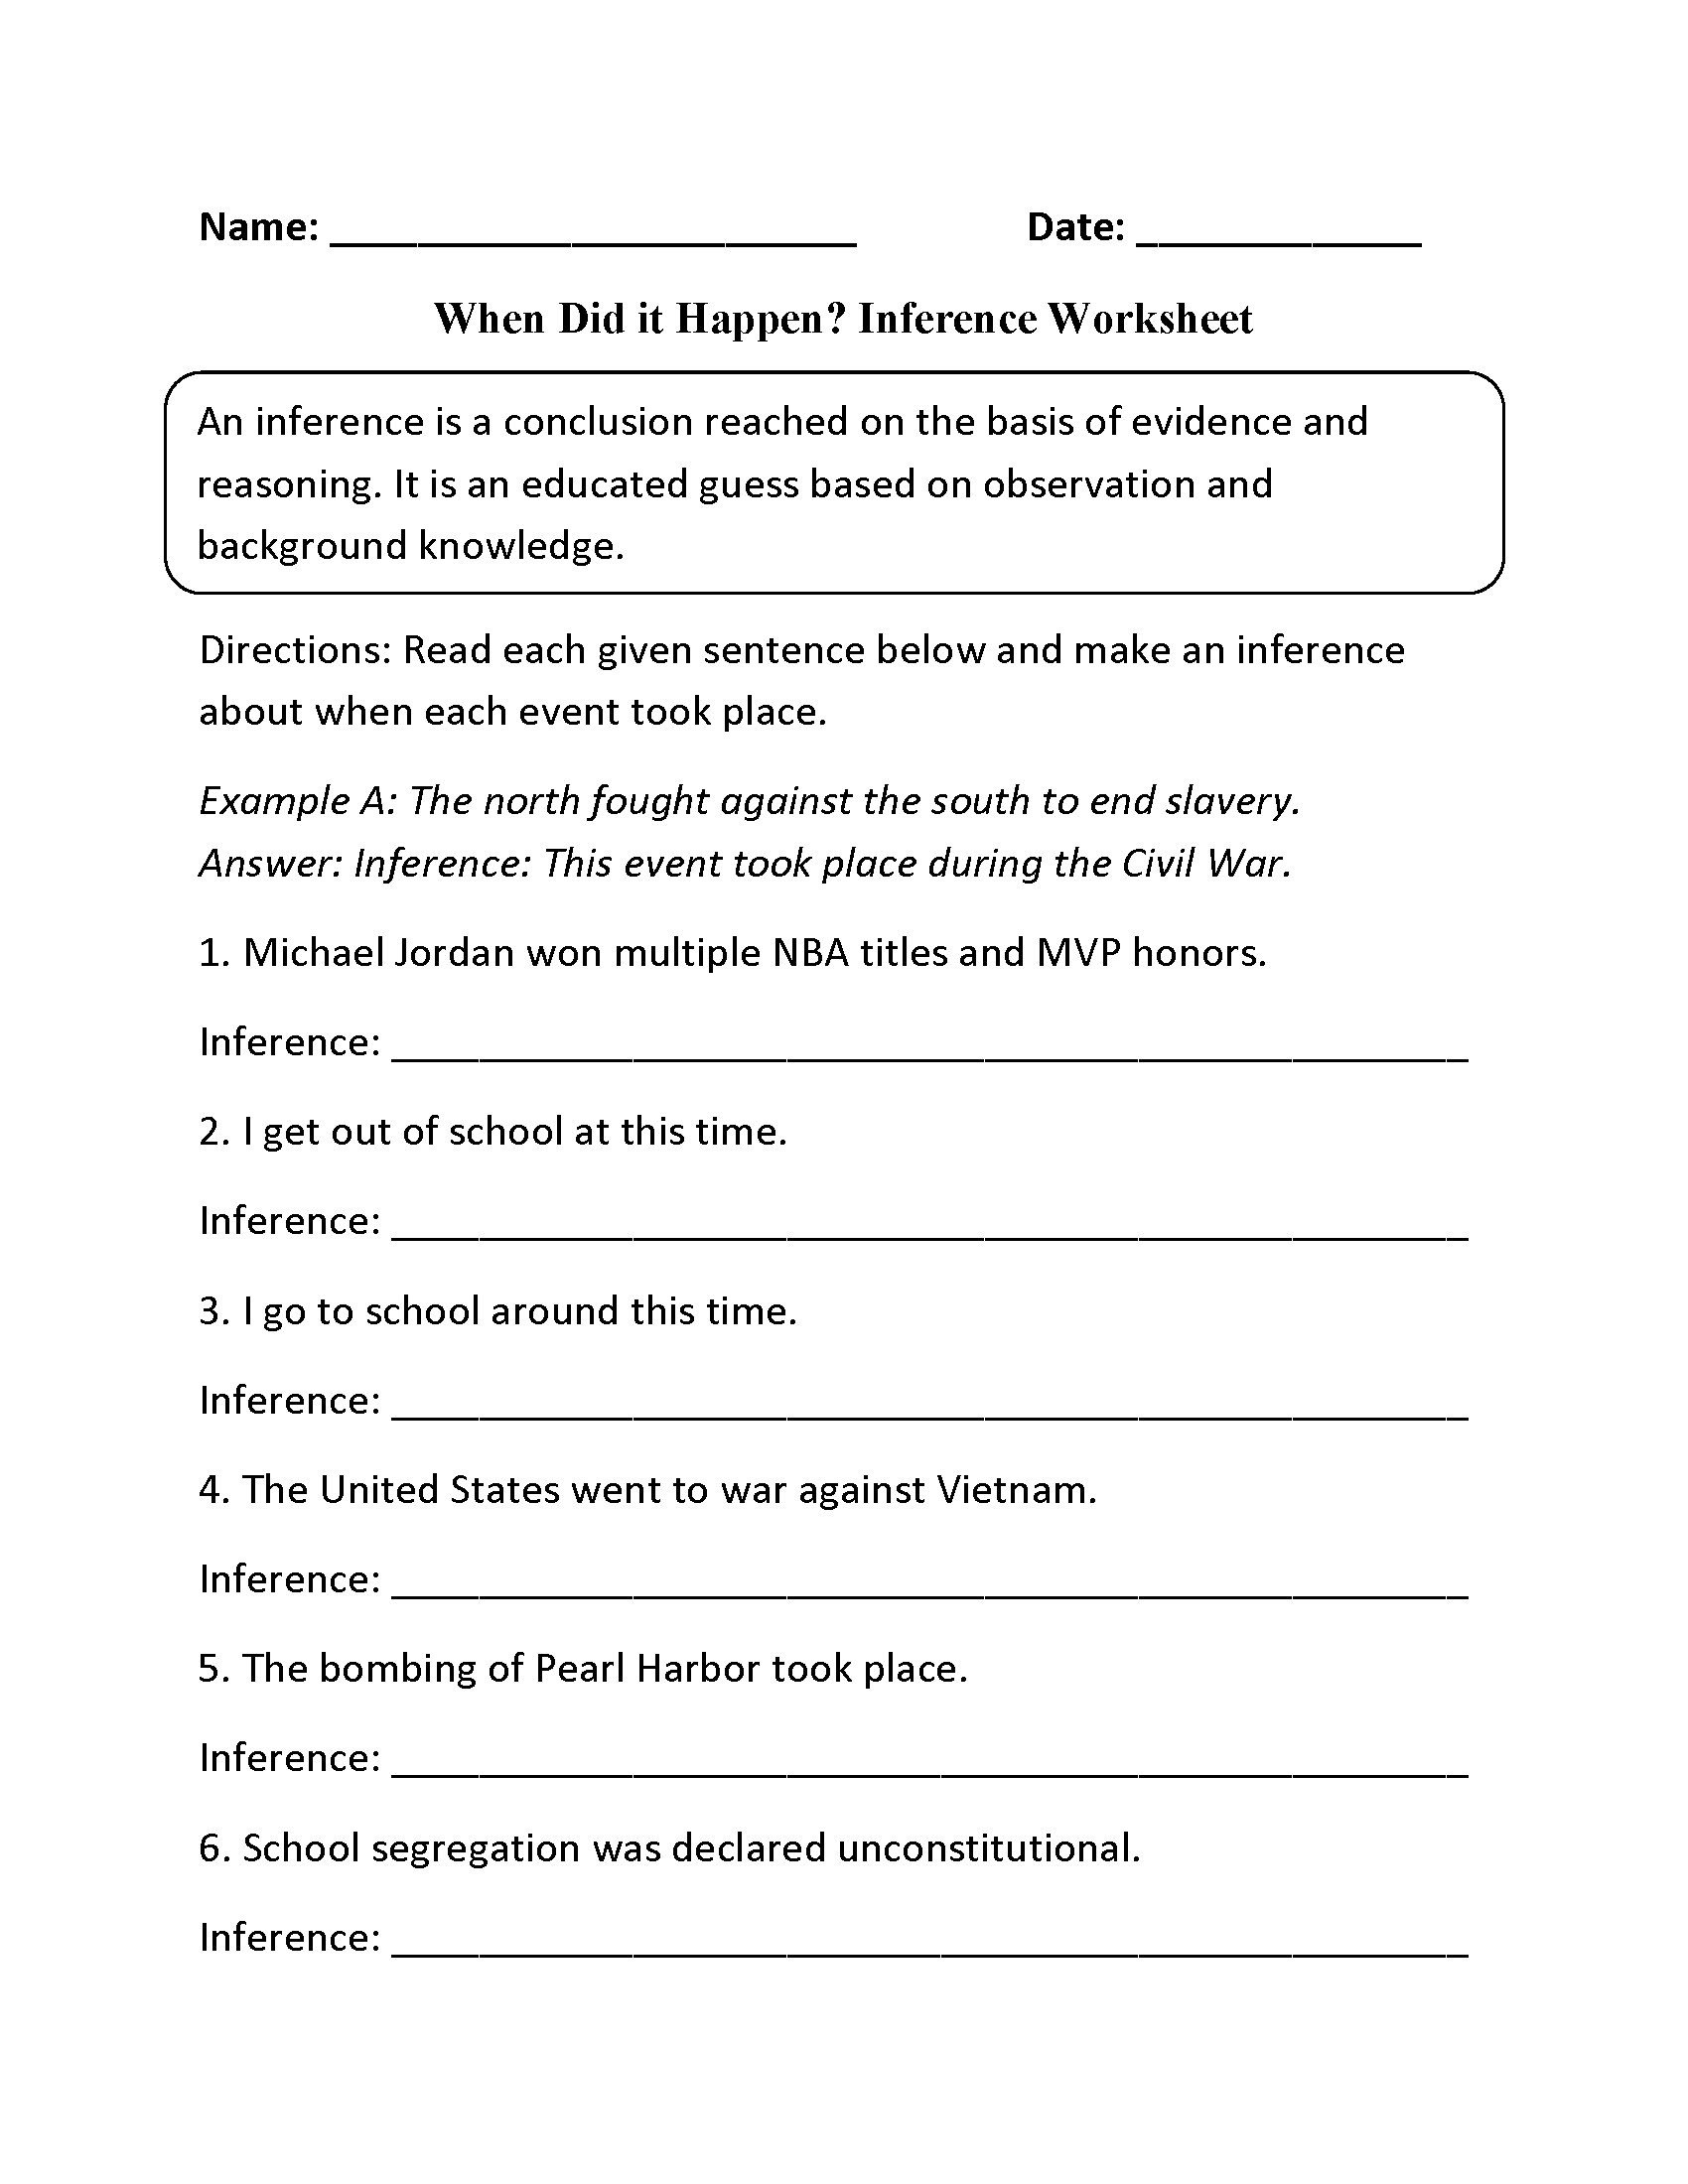 Inference Worksheets Grade 3 Making Inferences Worksheets 5th Grade